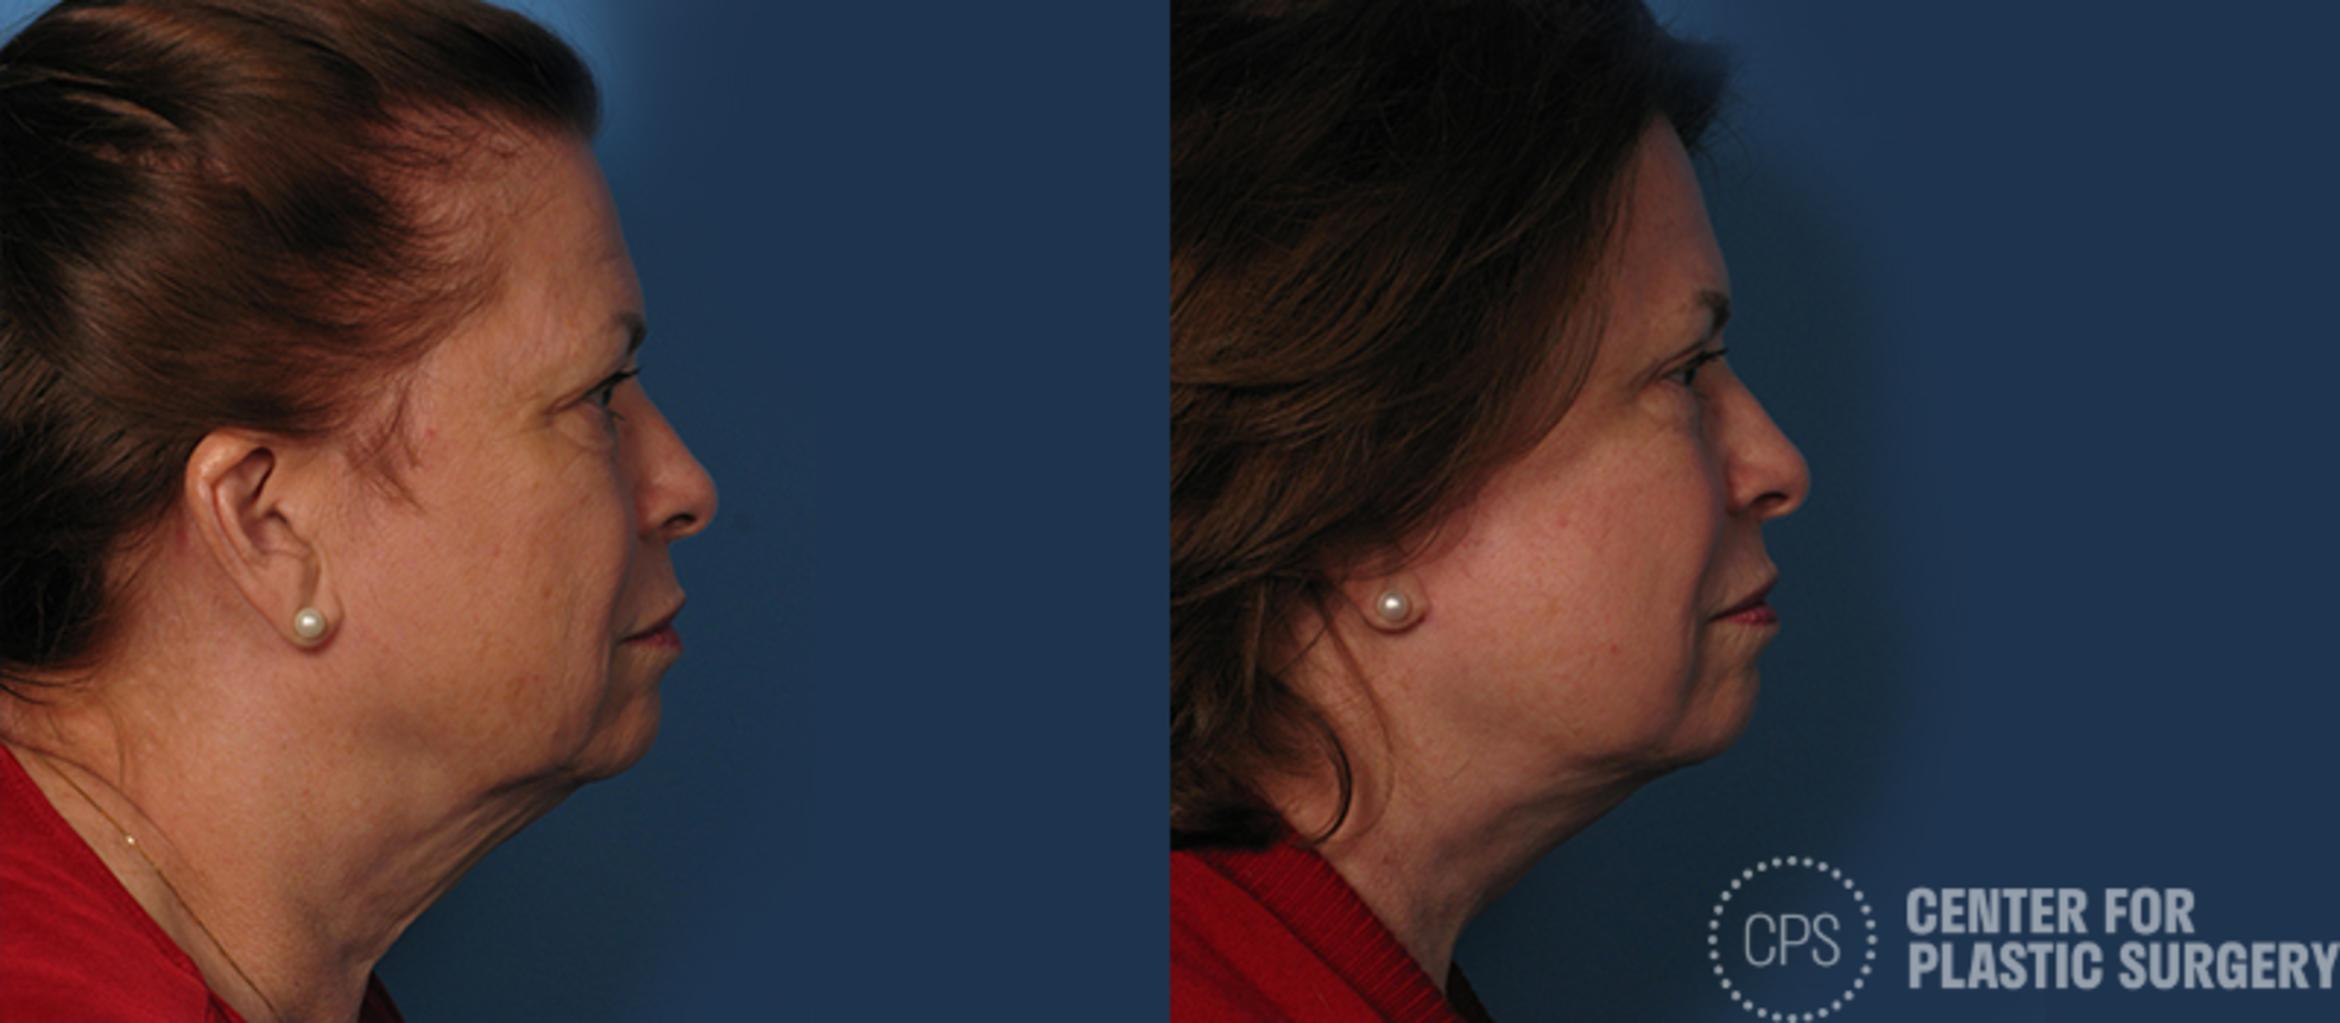 Facelift Before & After Photo | Annandale, Virginia | Center for Plastic Surgery